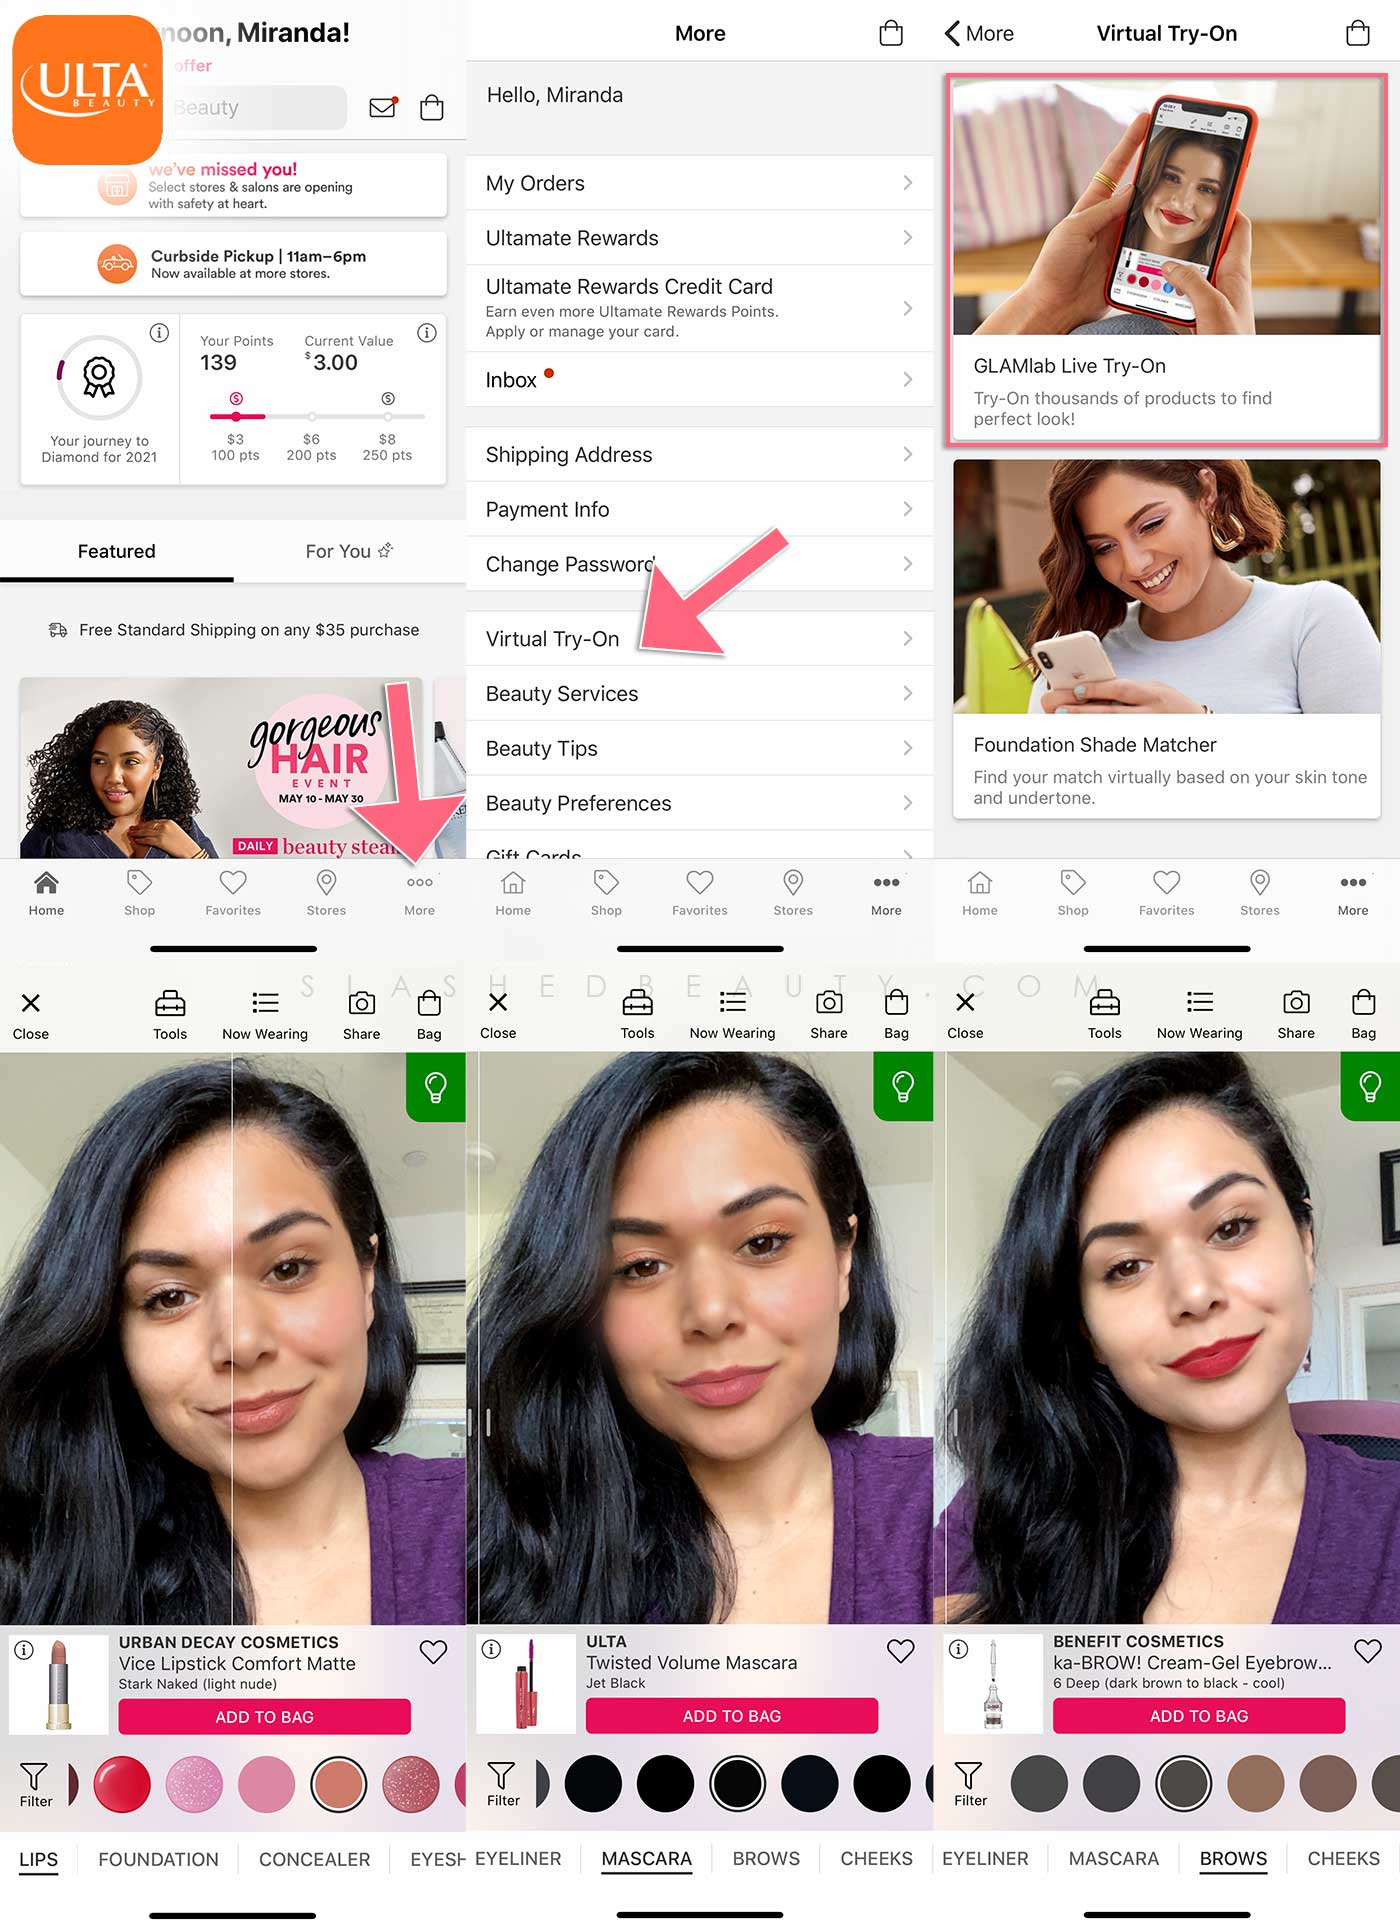 How to try on makeup virtually | How to find foundation match online | Buying Makeup During Lockdown: Tips for Buying Makeup Online | Slashed Beauty